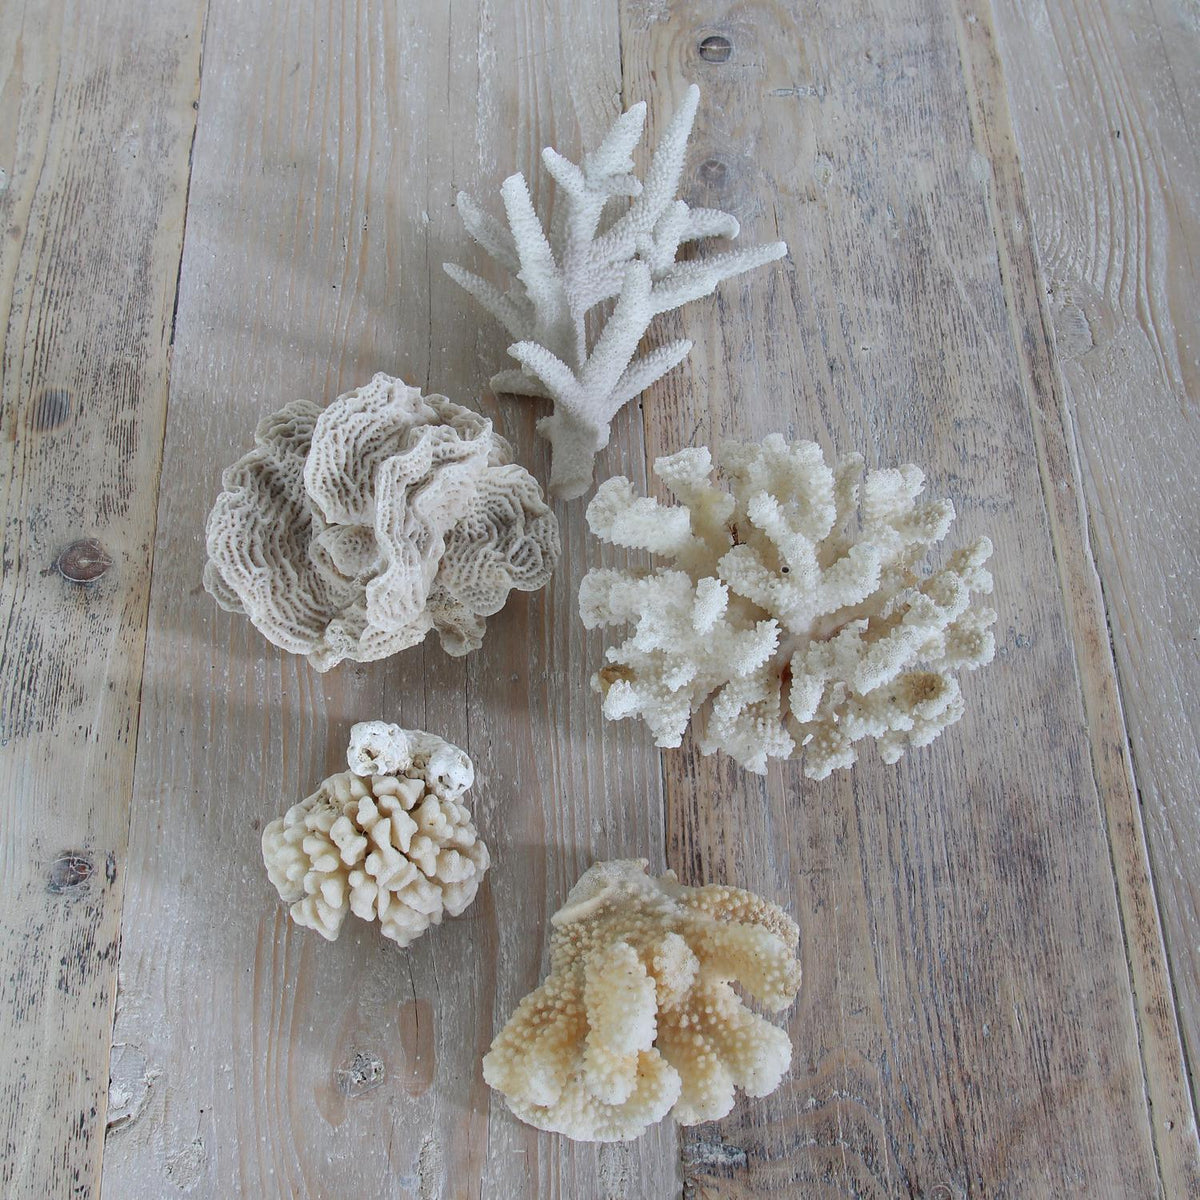 Decorative Collection of Five Vintage Corals